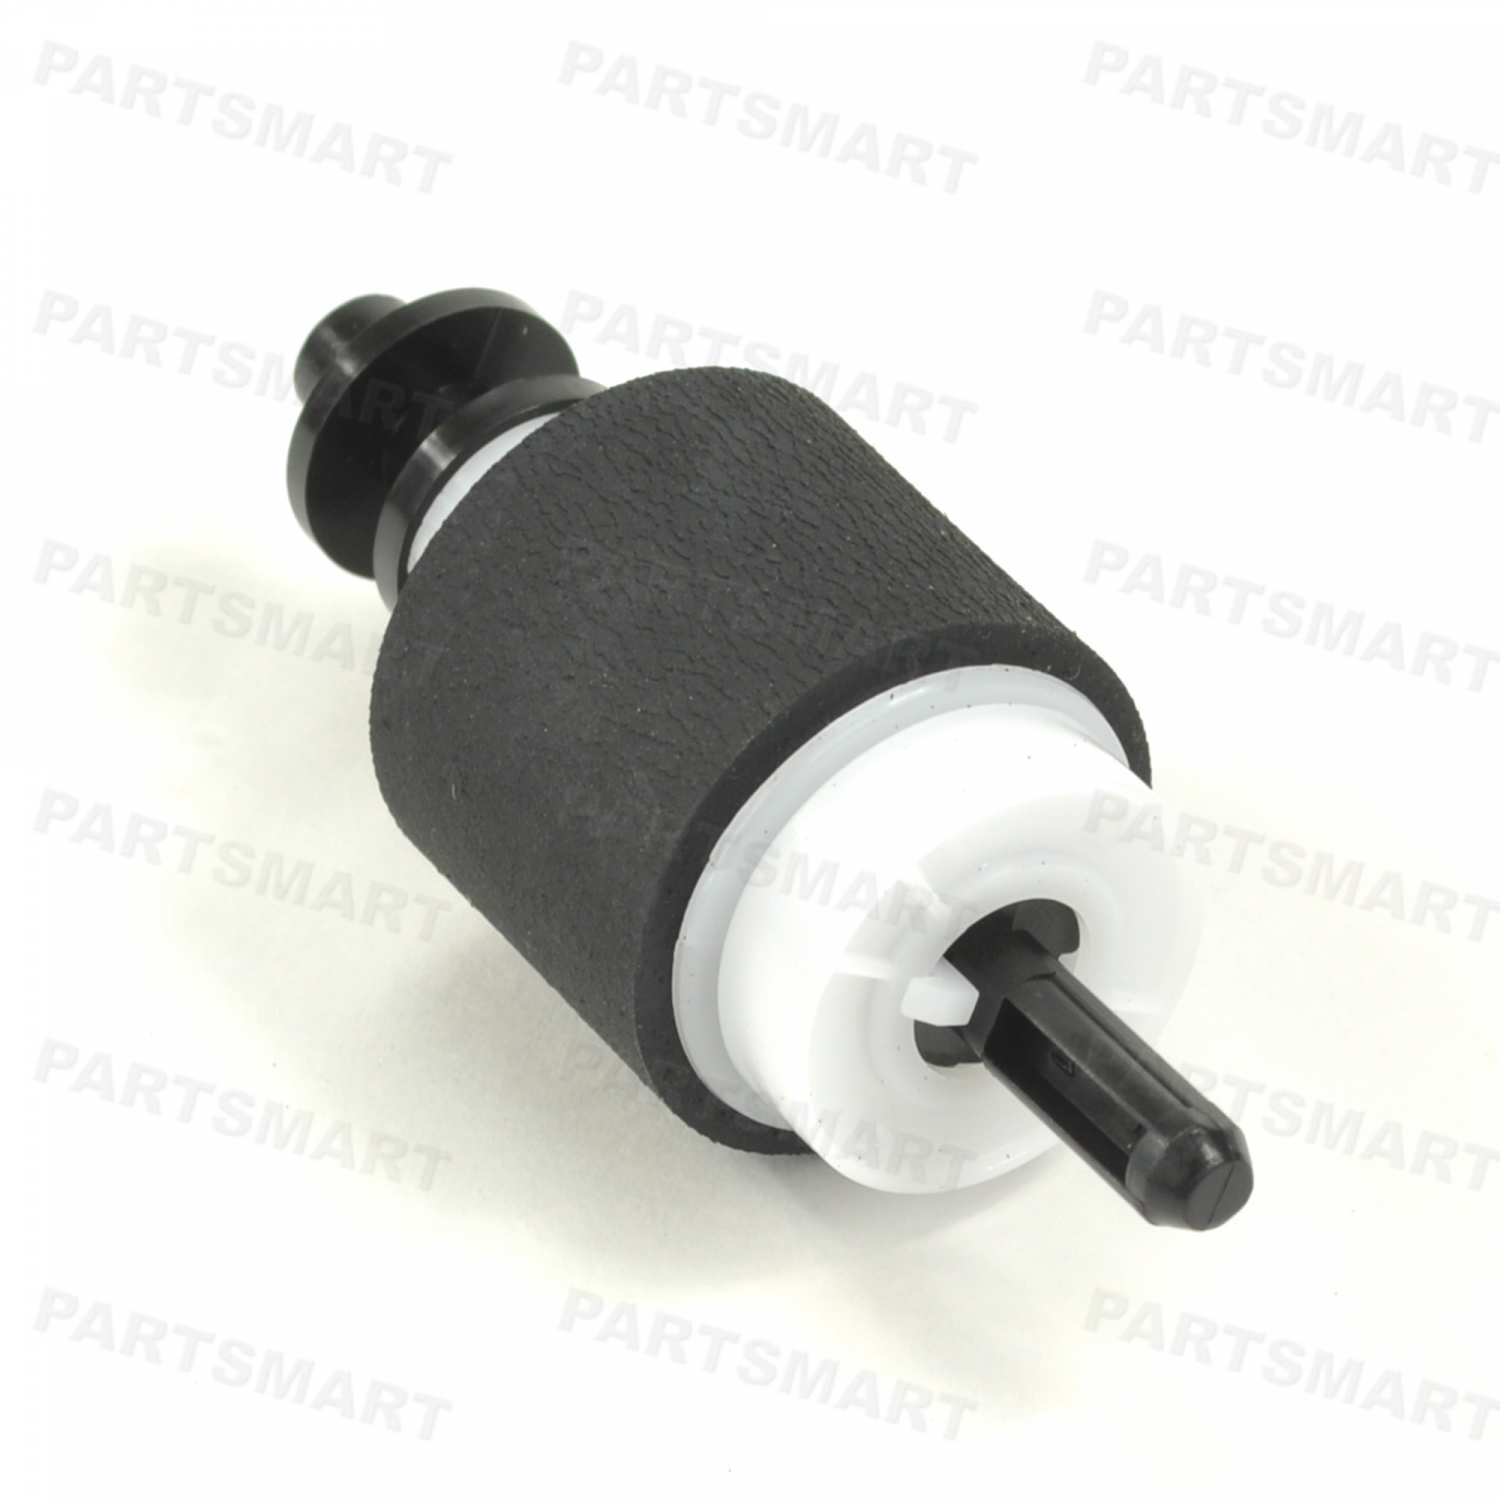 RM1-4968-000 Pickup Roller Assy, Tray 2 for HP Color LaserJet CP3525